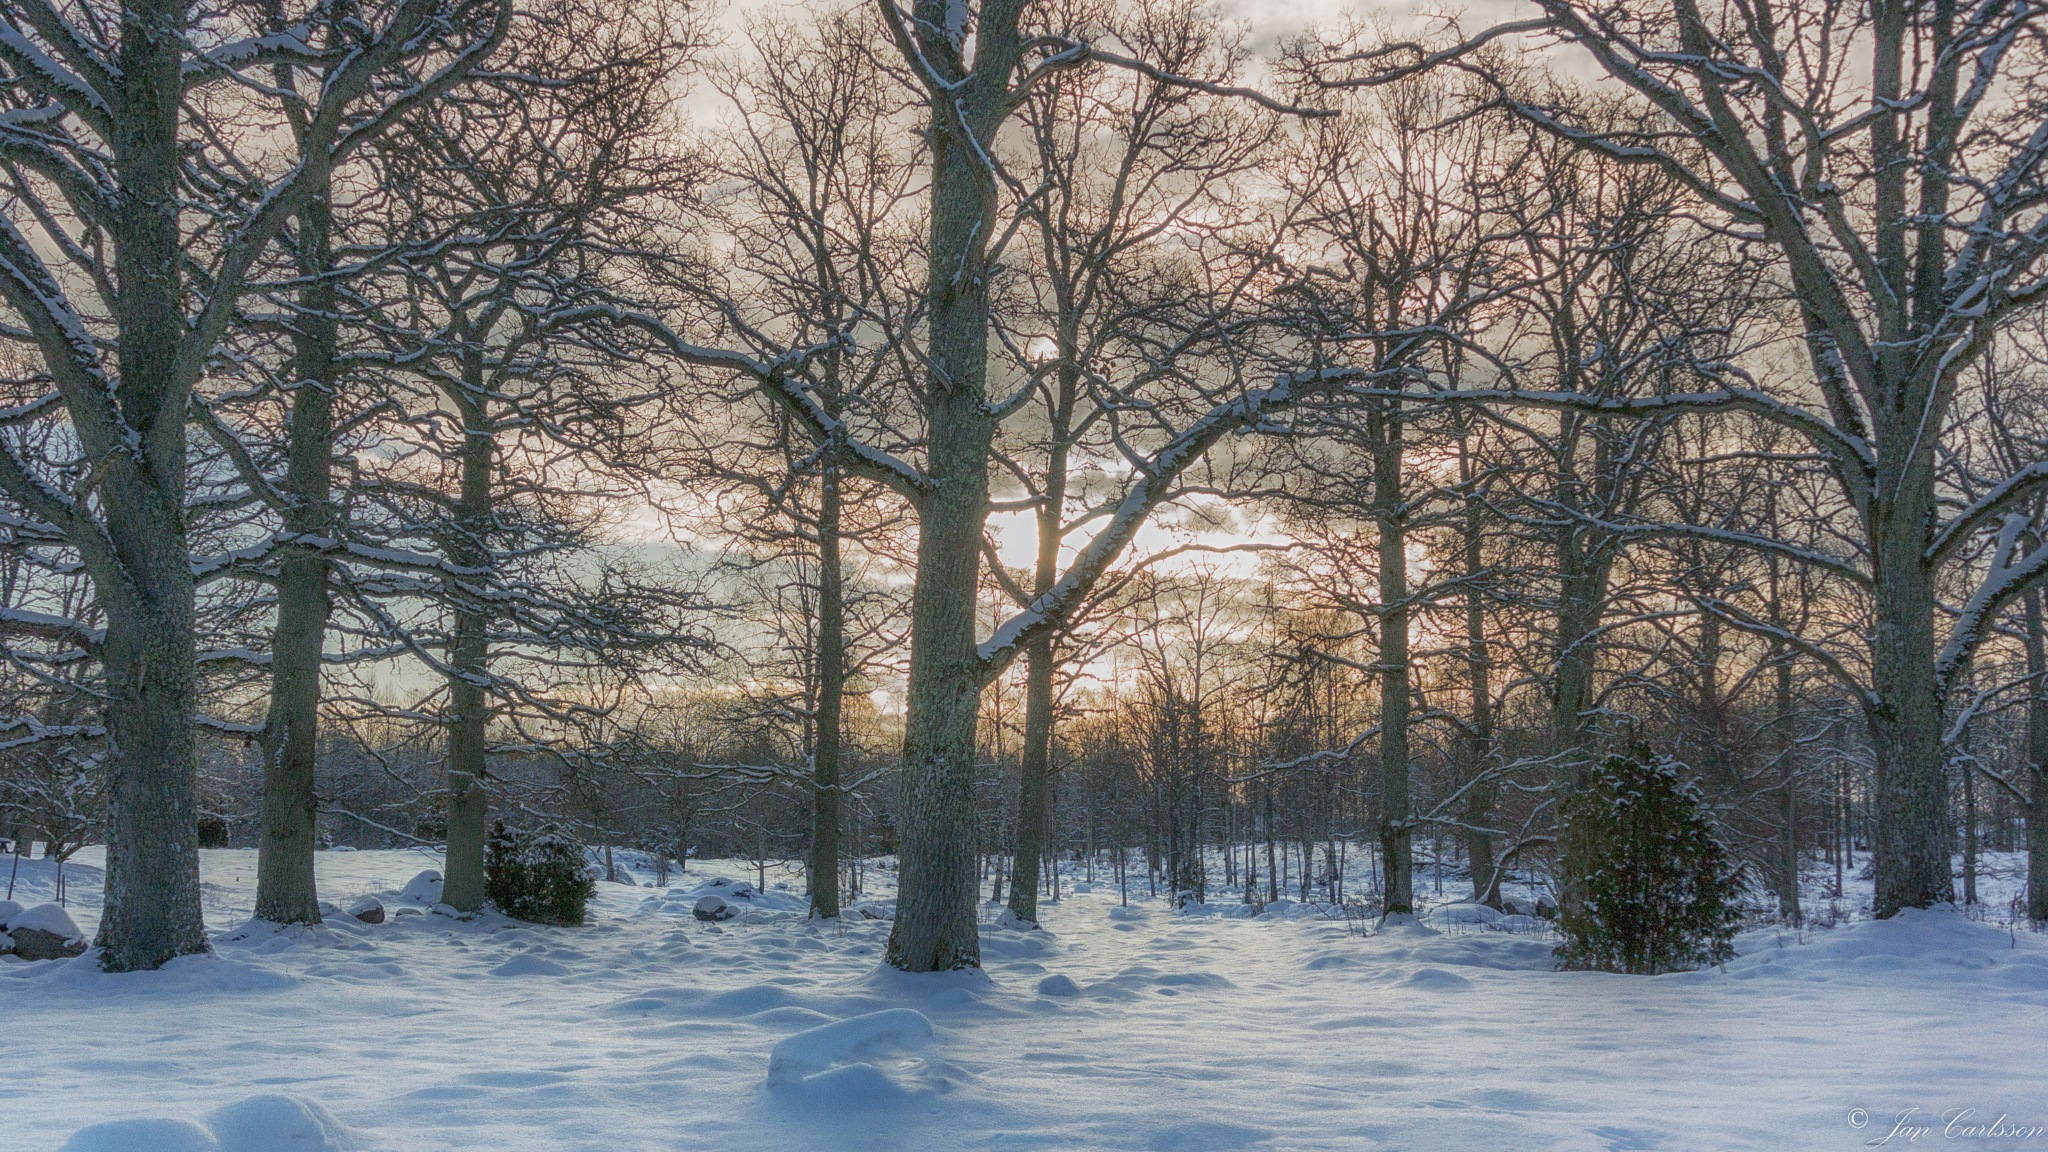 Into the Woods a Very Cold February Morning HDR by carljan w carlsson